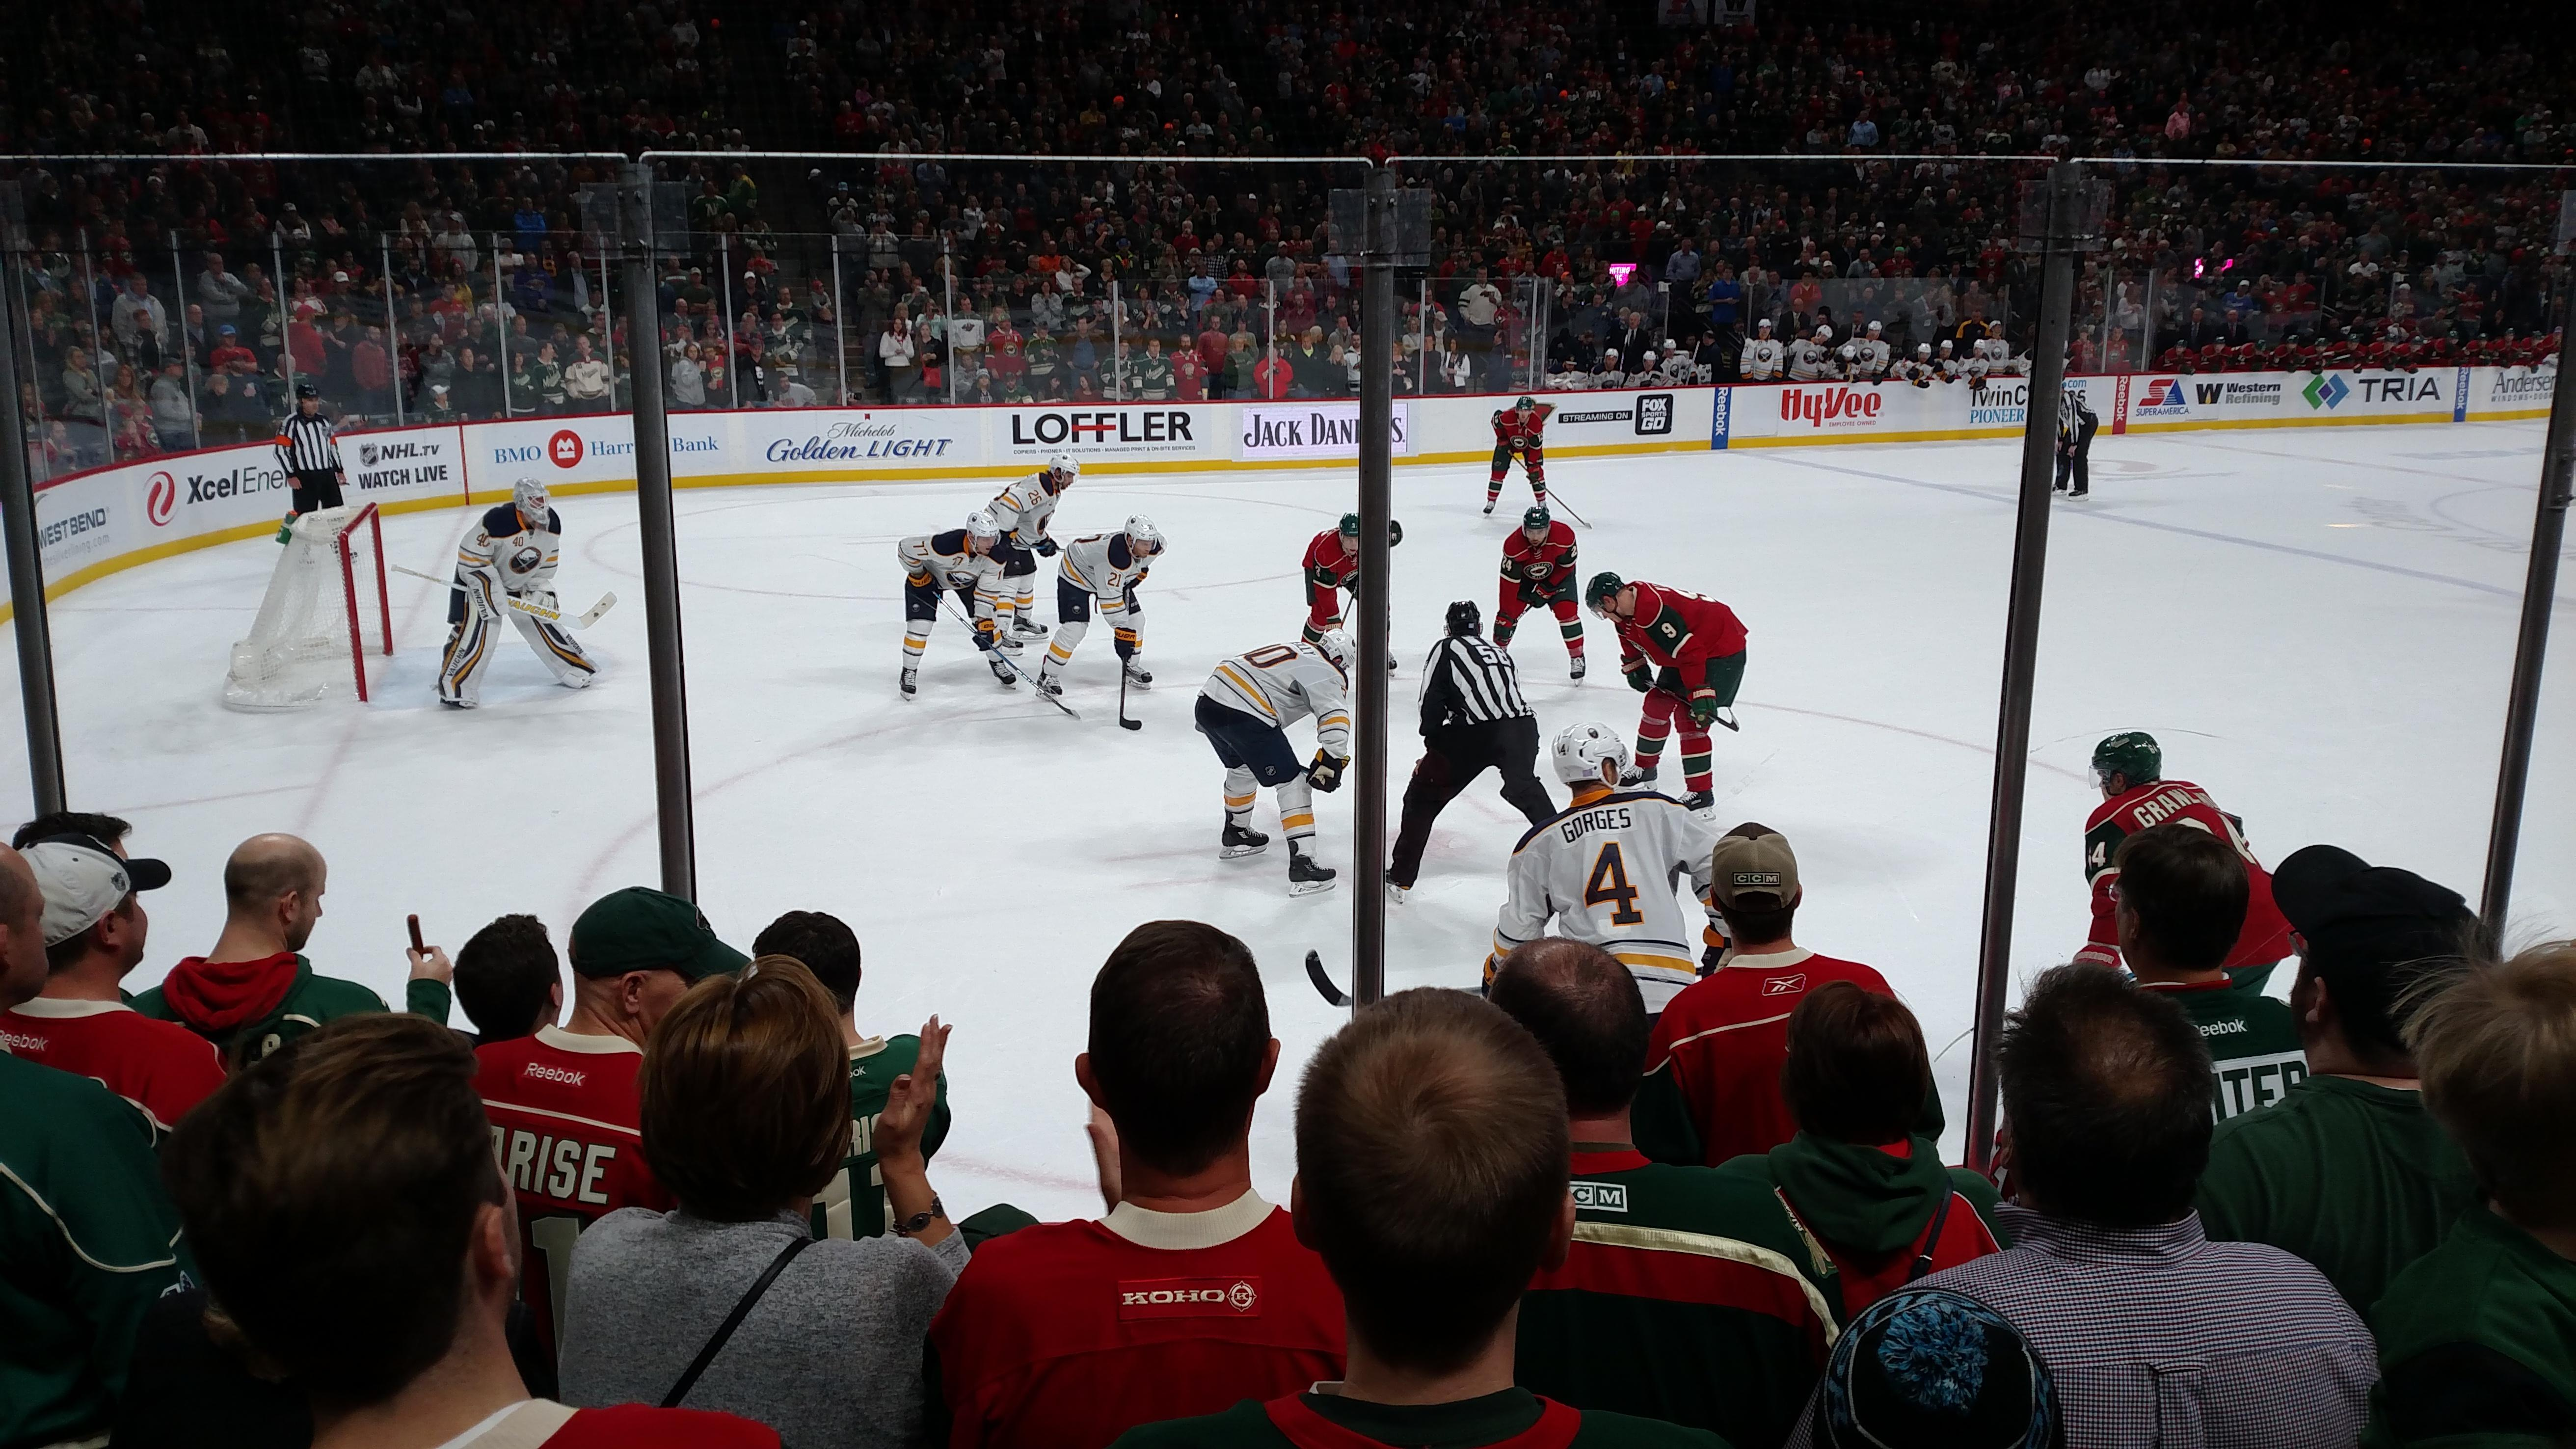 Xcel Energy Center Section 106 Row 6 Seat 7